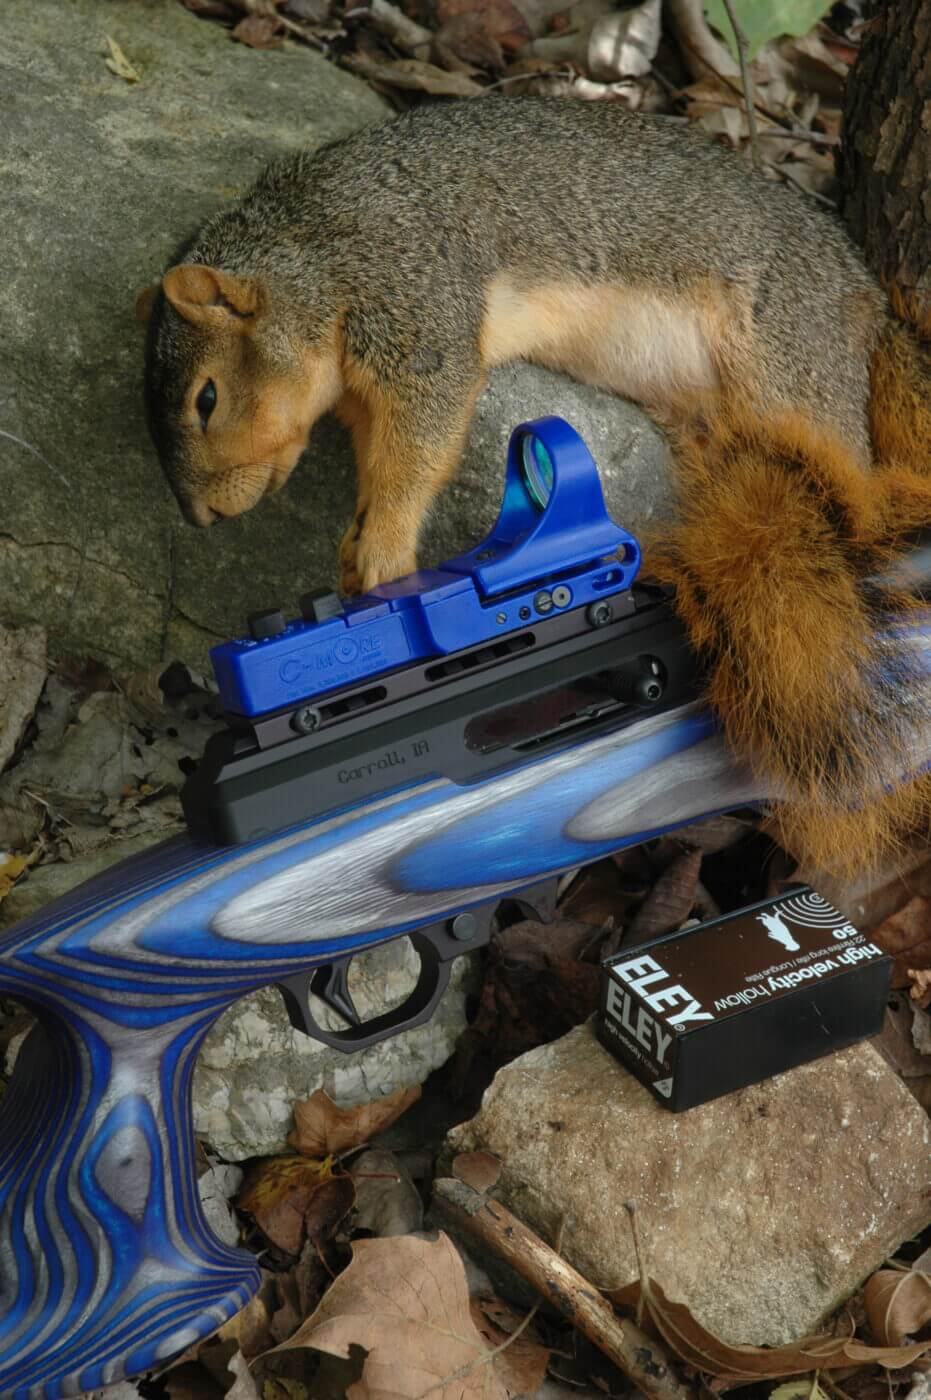 C-More sight used to hunt squirrel